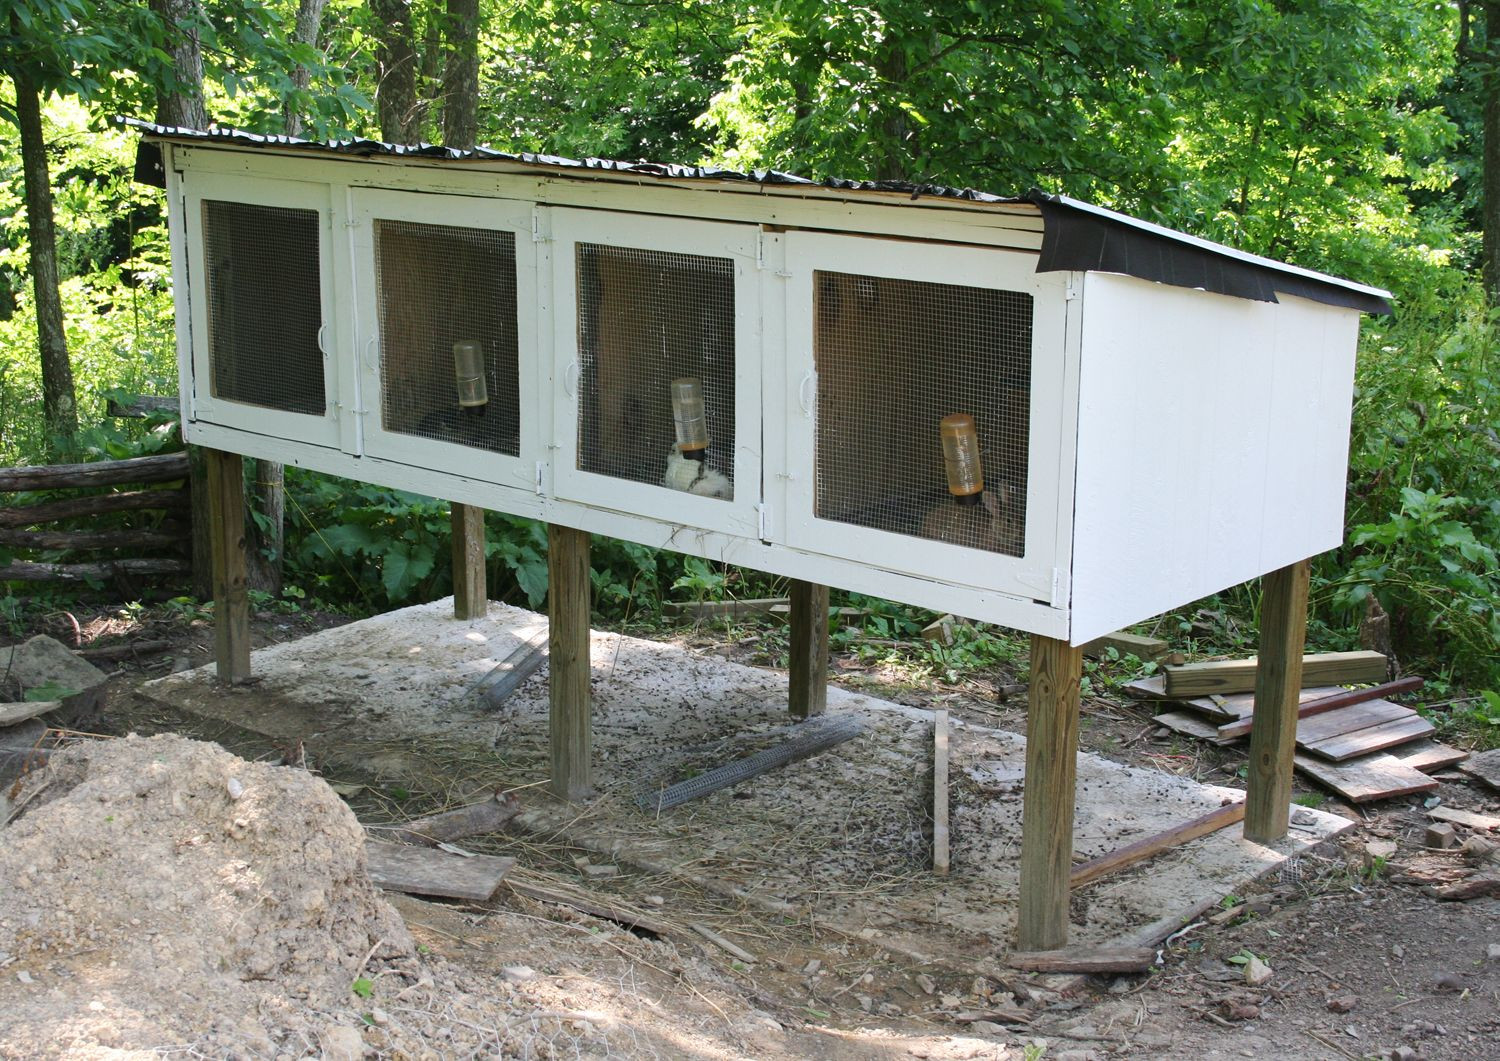 Best ideas about DIY Outdoor Rabbit Cage . Save or Pin American Woodworker Plans Now.